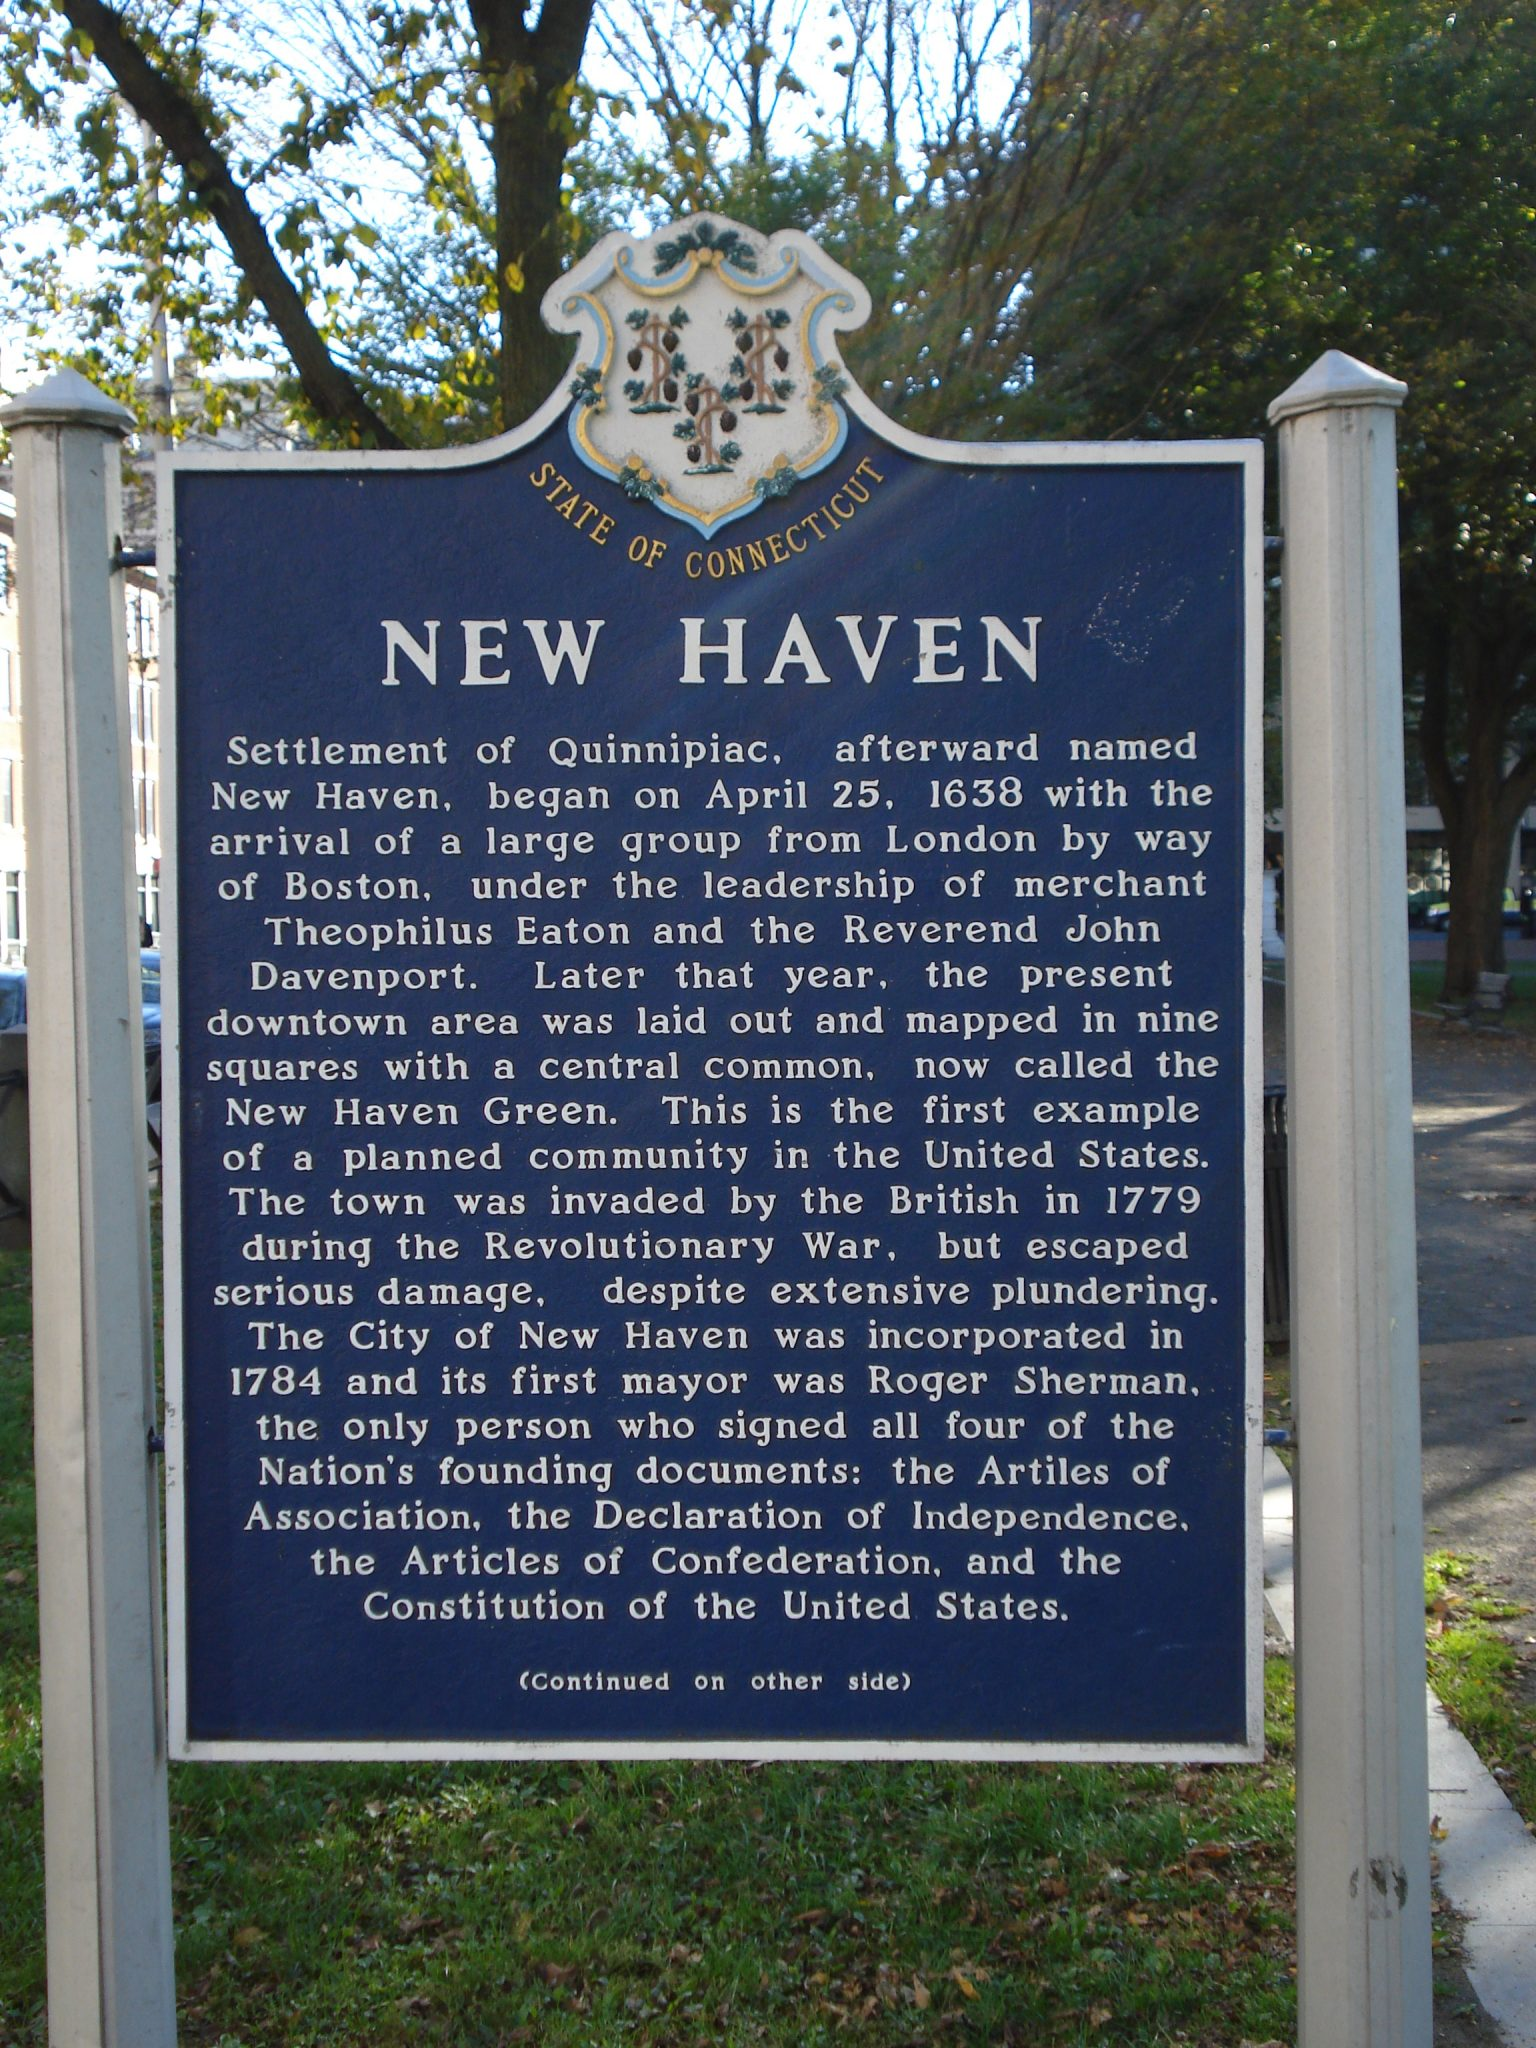 Municipal Veterans' Representative for the City of New Haven Resource Page